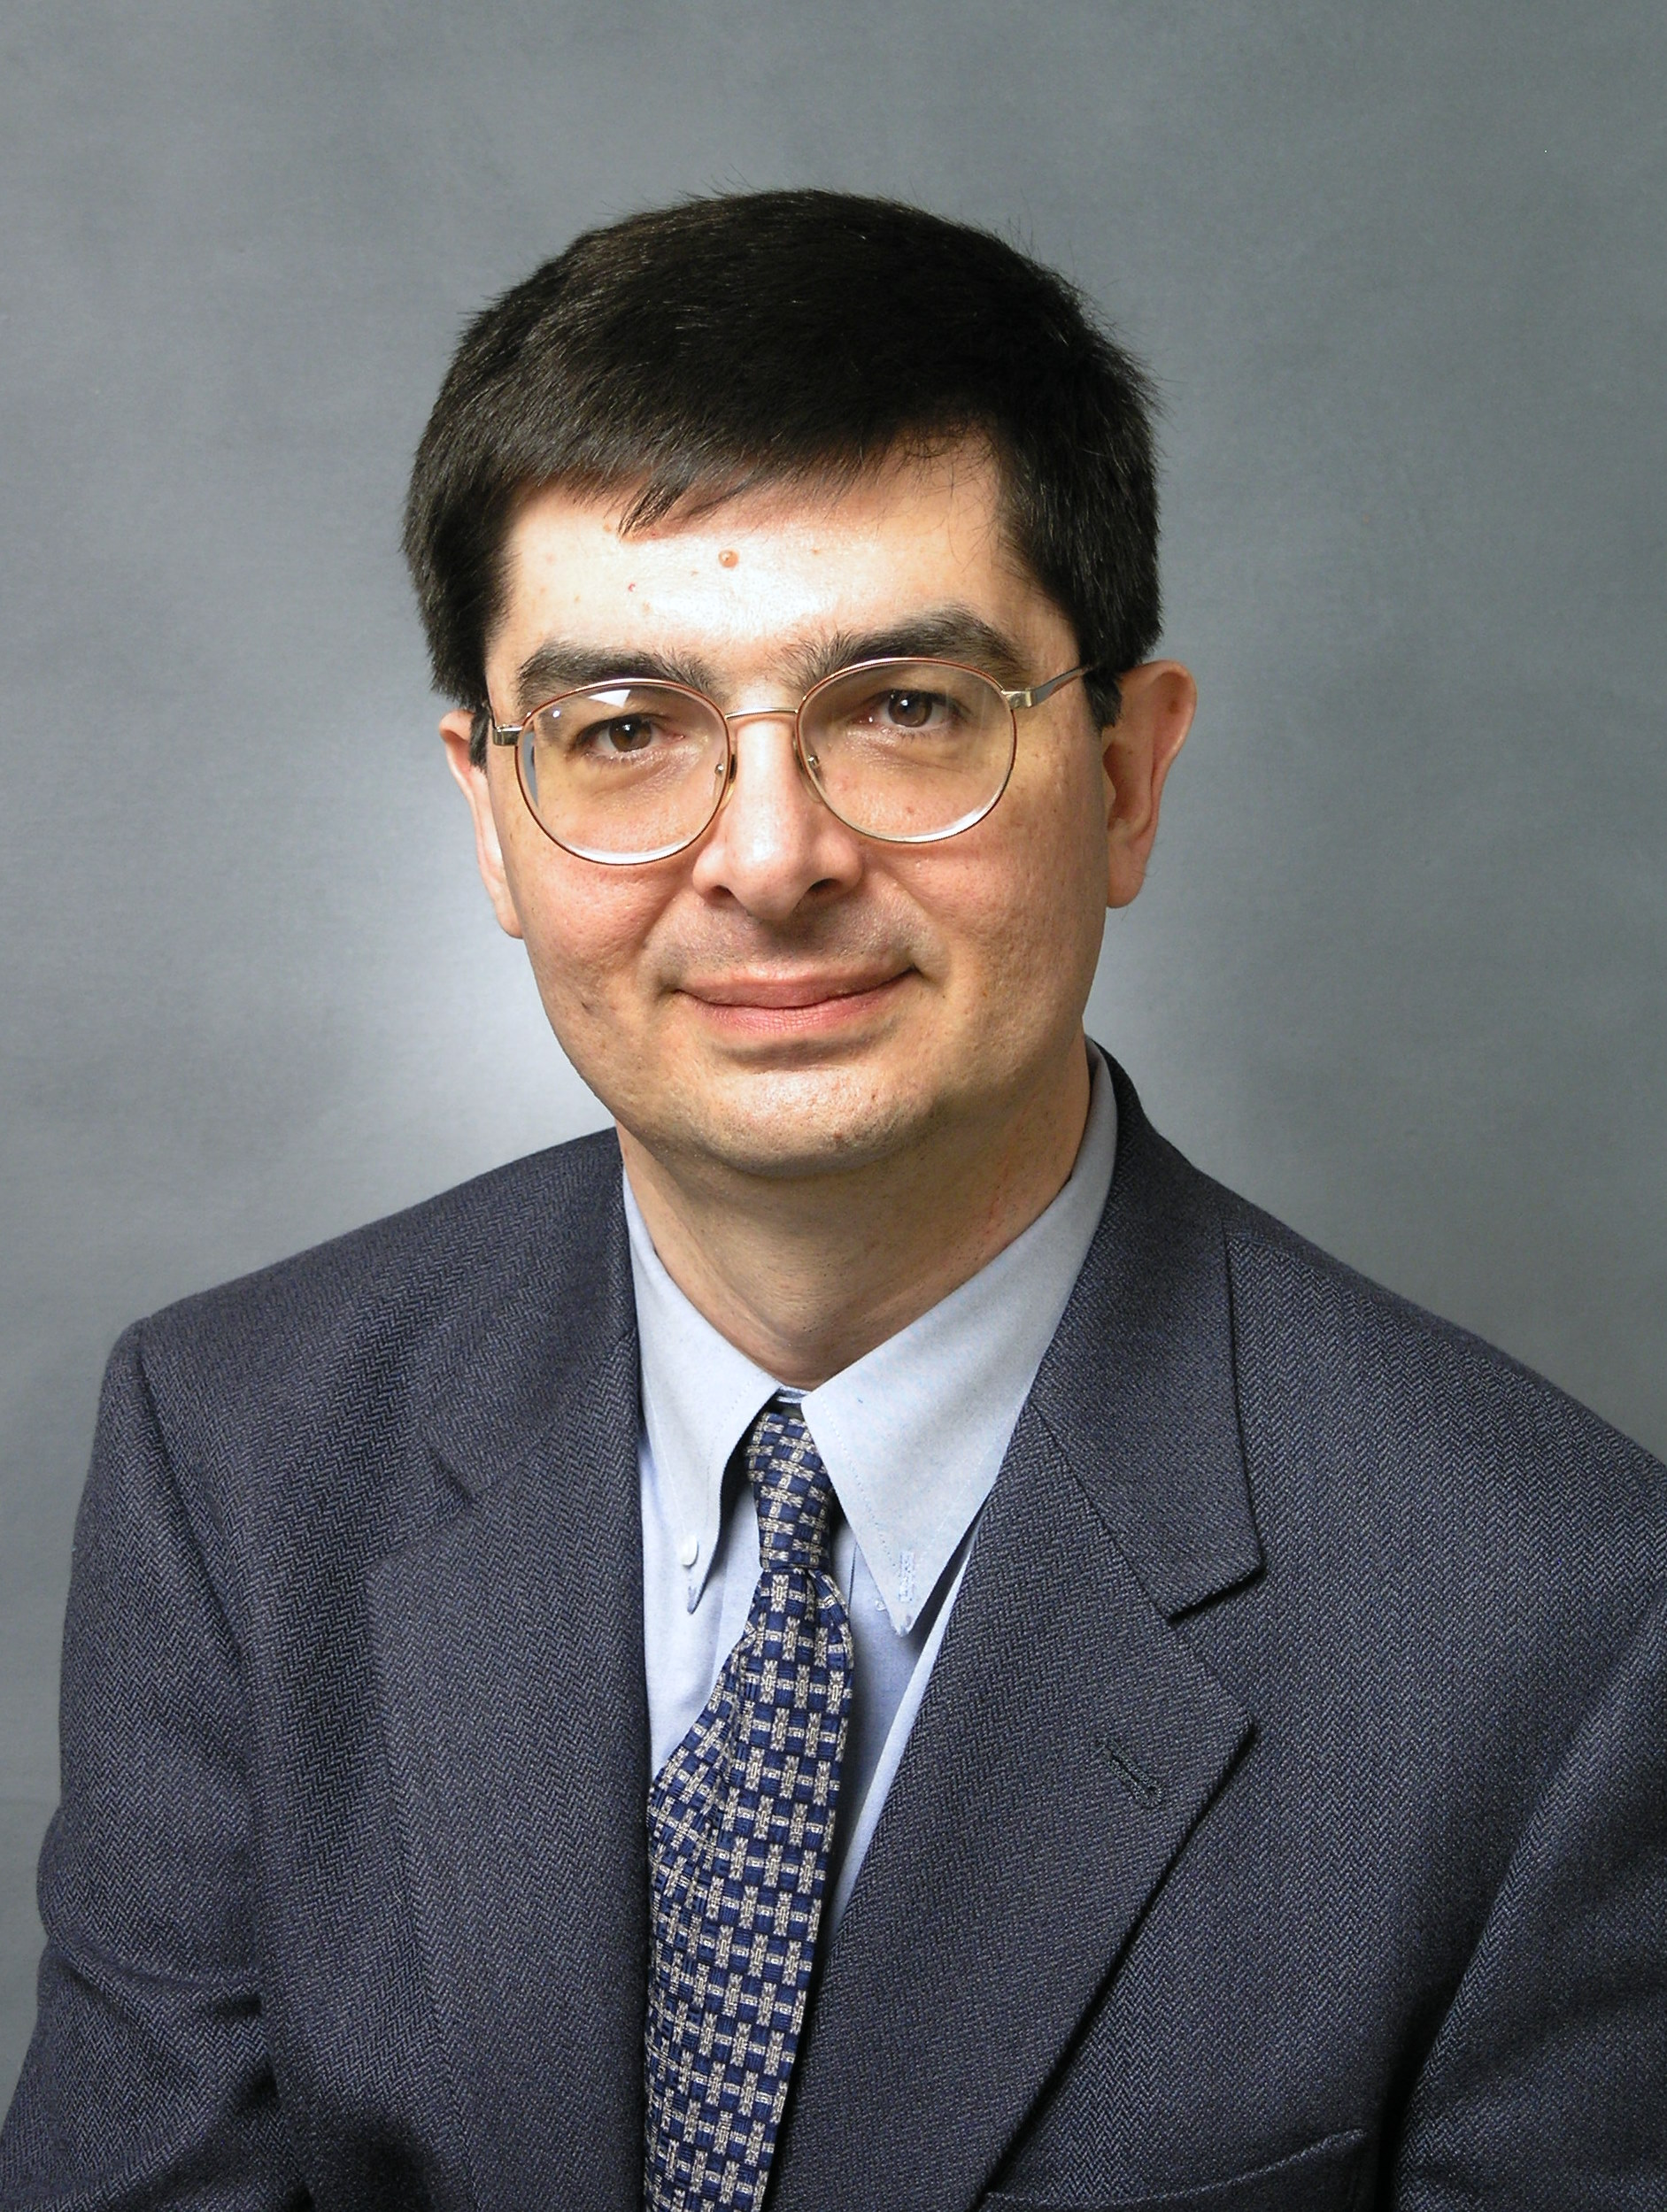 Dr. Antonios Christou